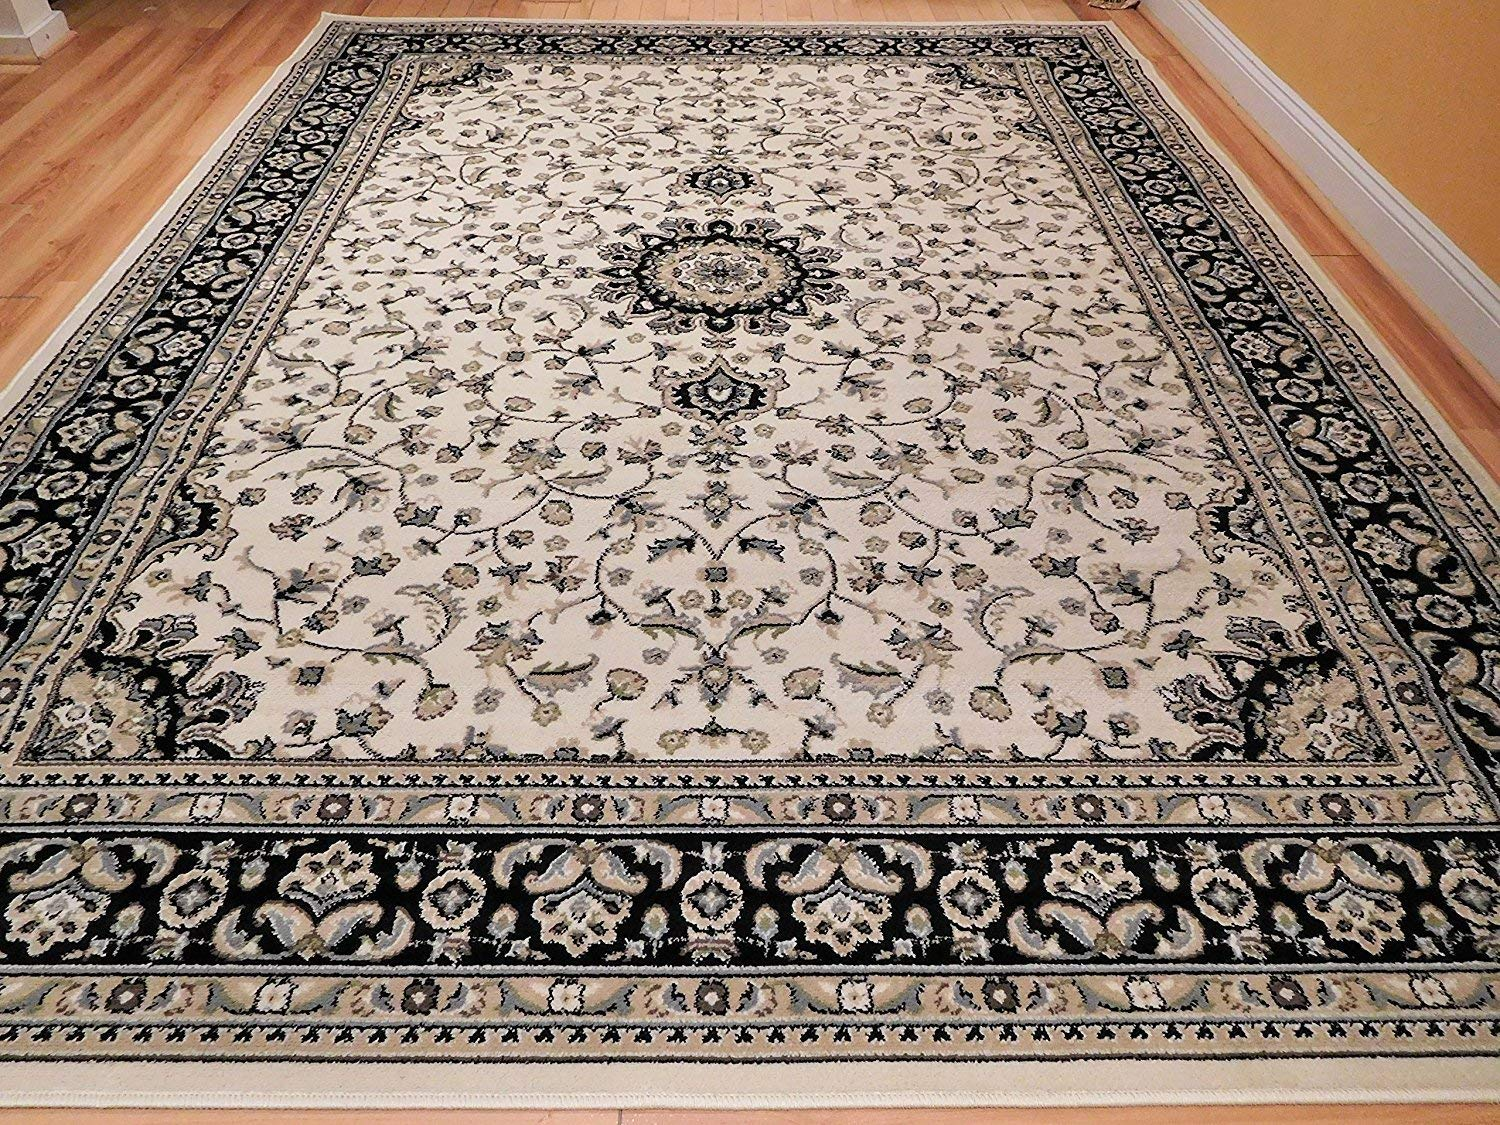 Your detailed guide on traditional rugs